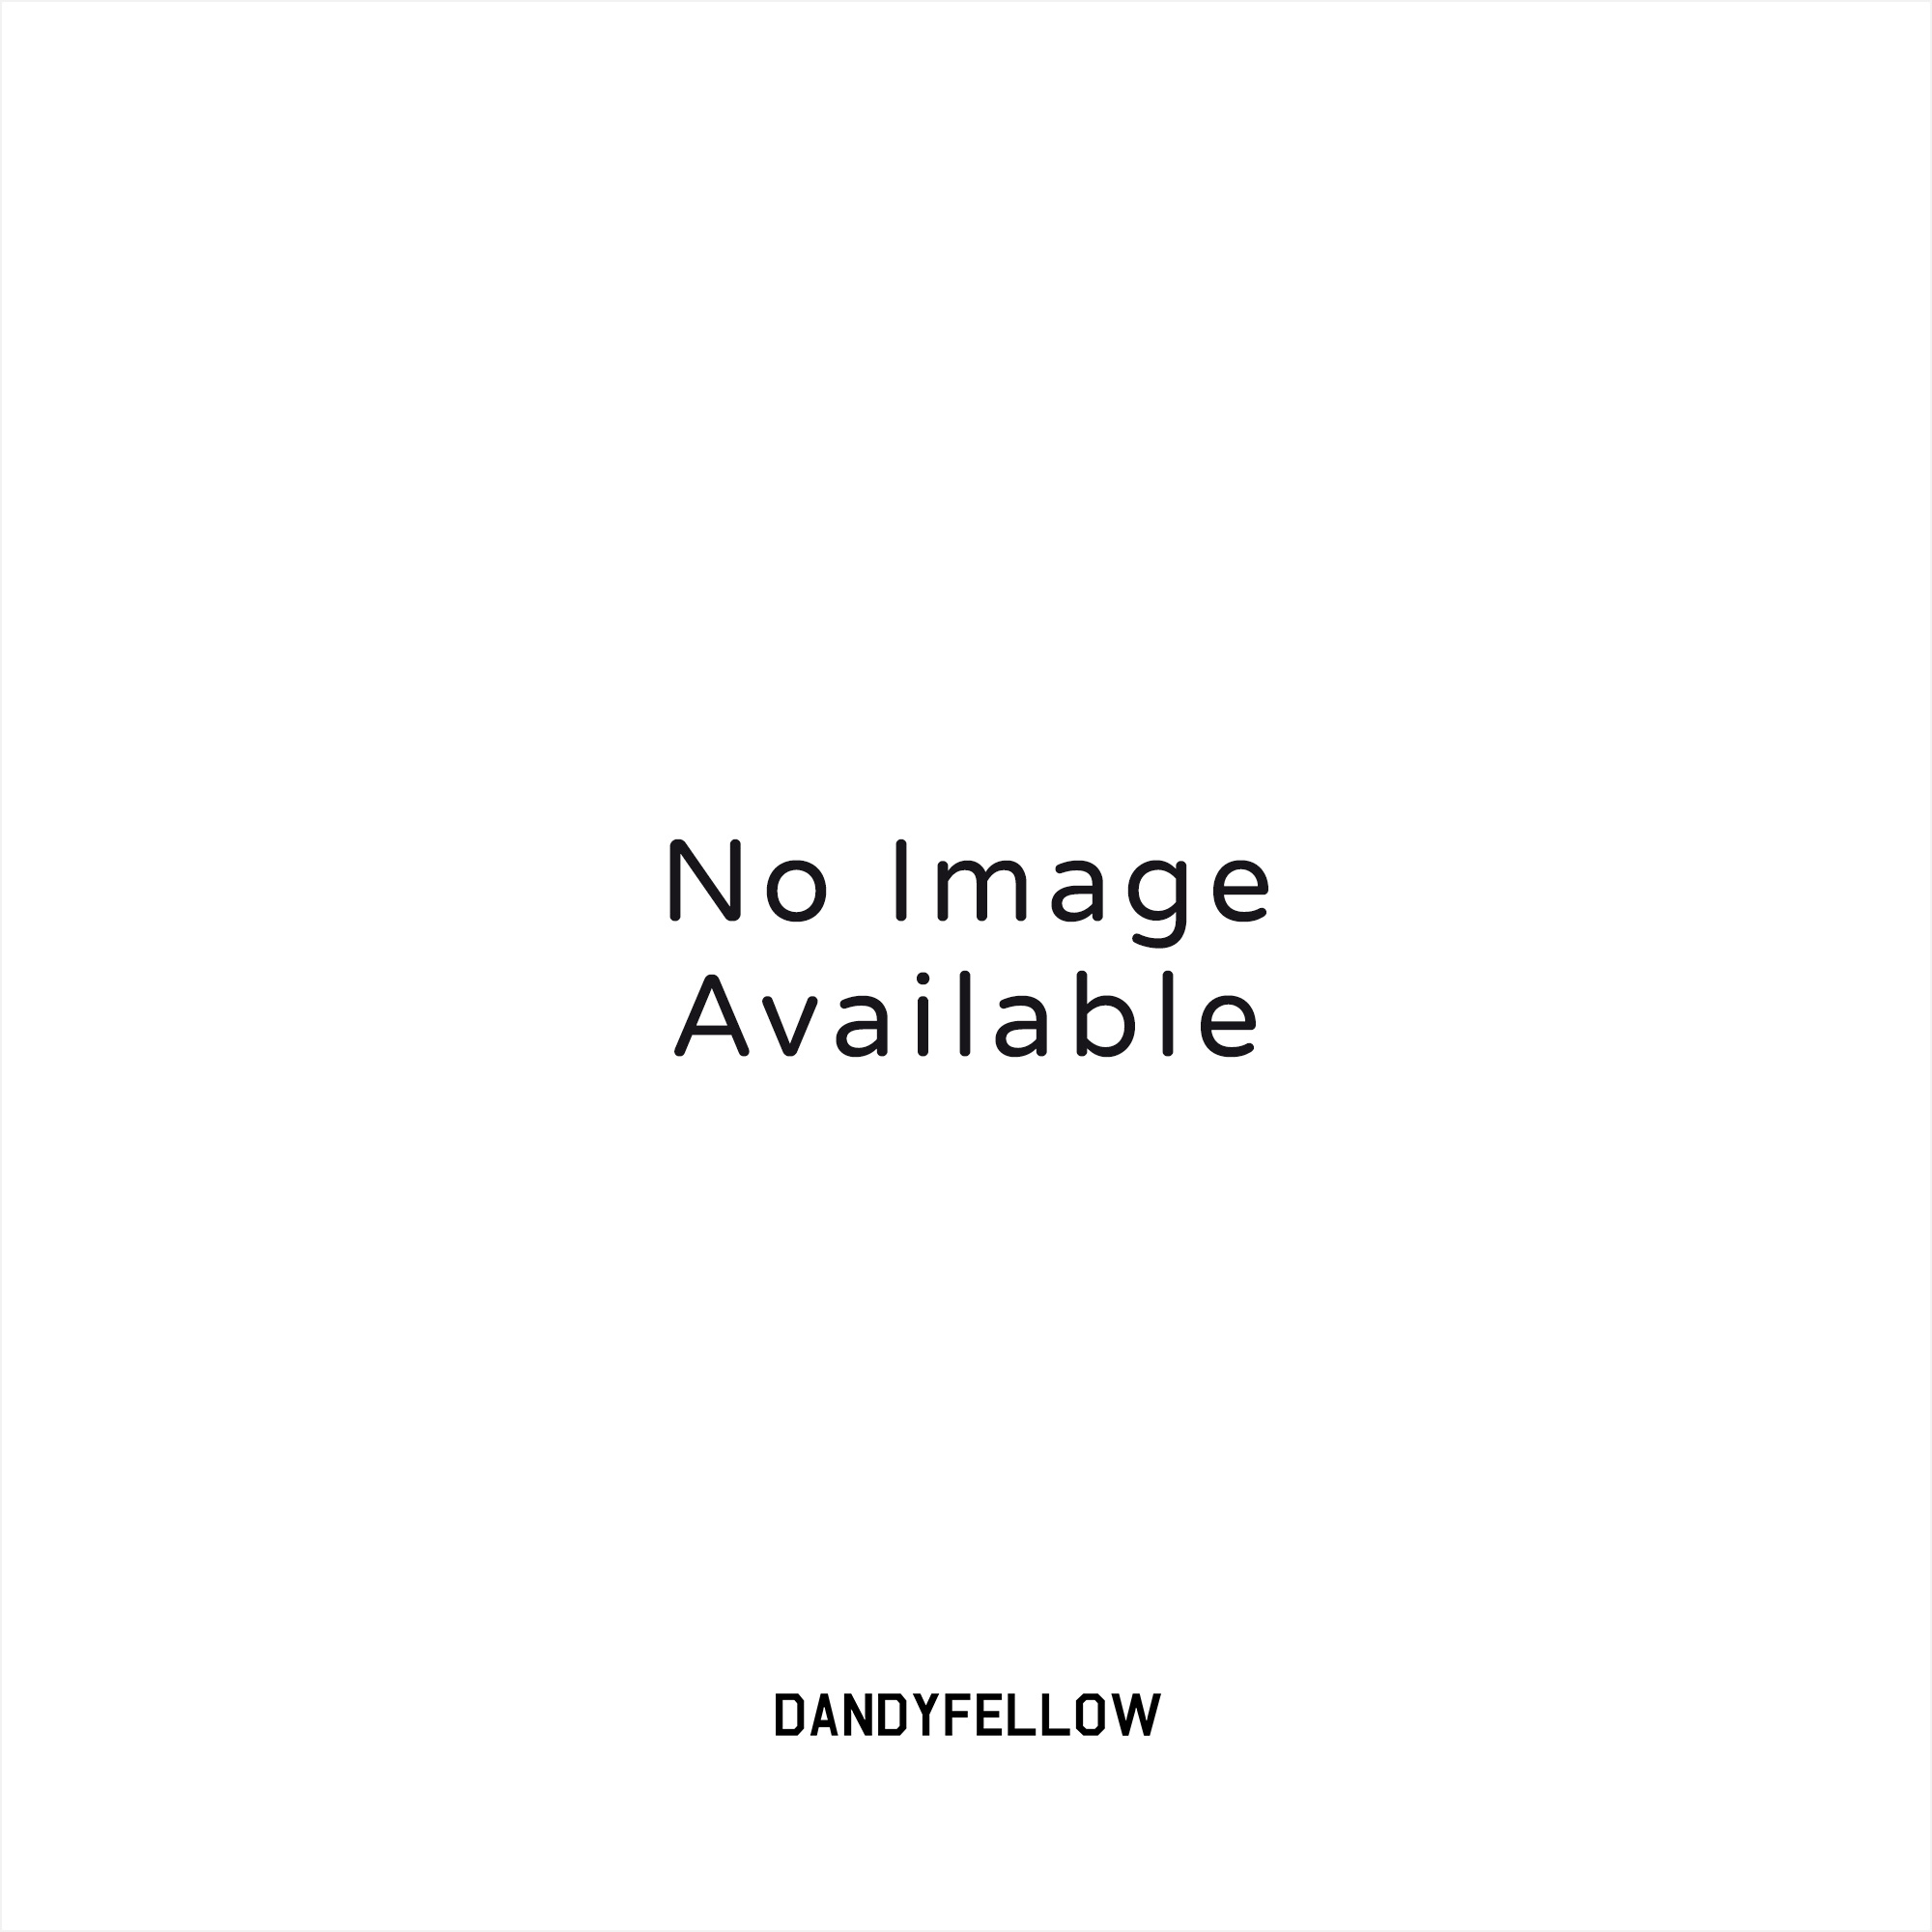 Levi's Vintage ® Levi's Vintage 1944 501 Shrink to Fit Denim Jeans 44501-0068